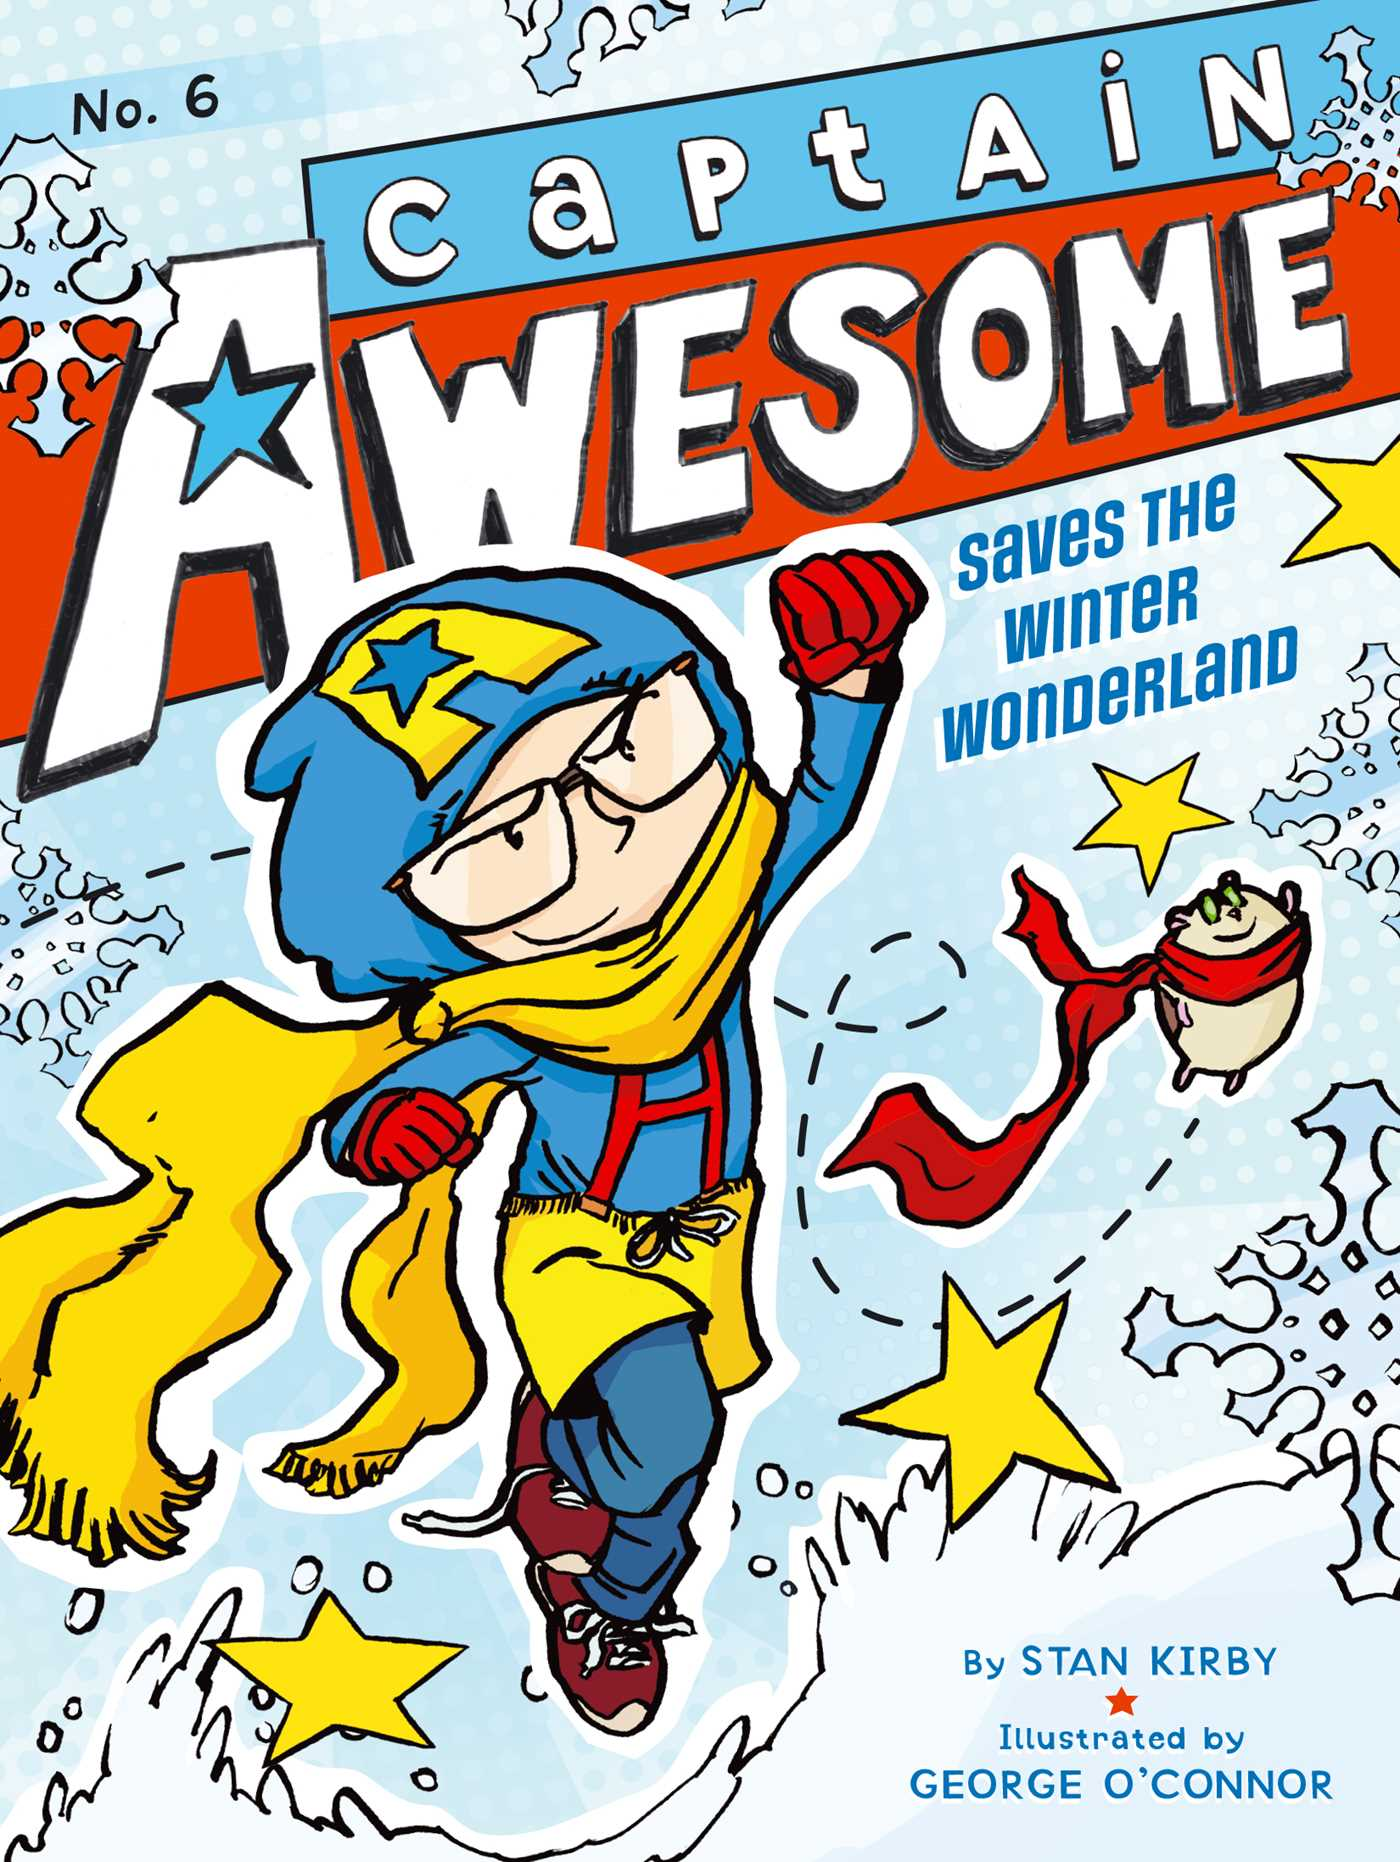 Captain awesome saves the winter wonderland 9781442443365 hr